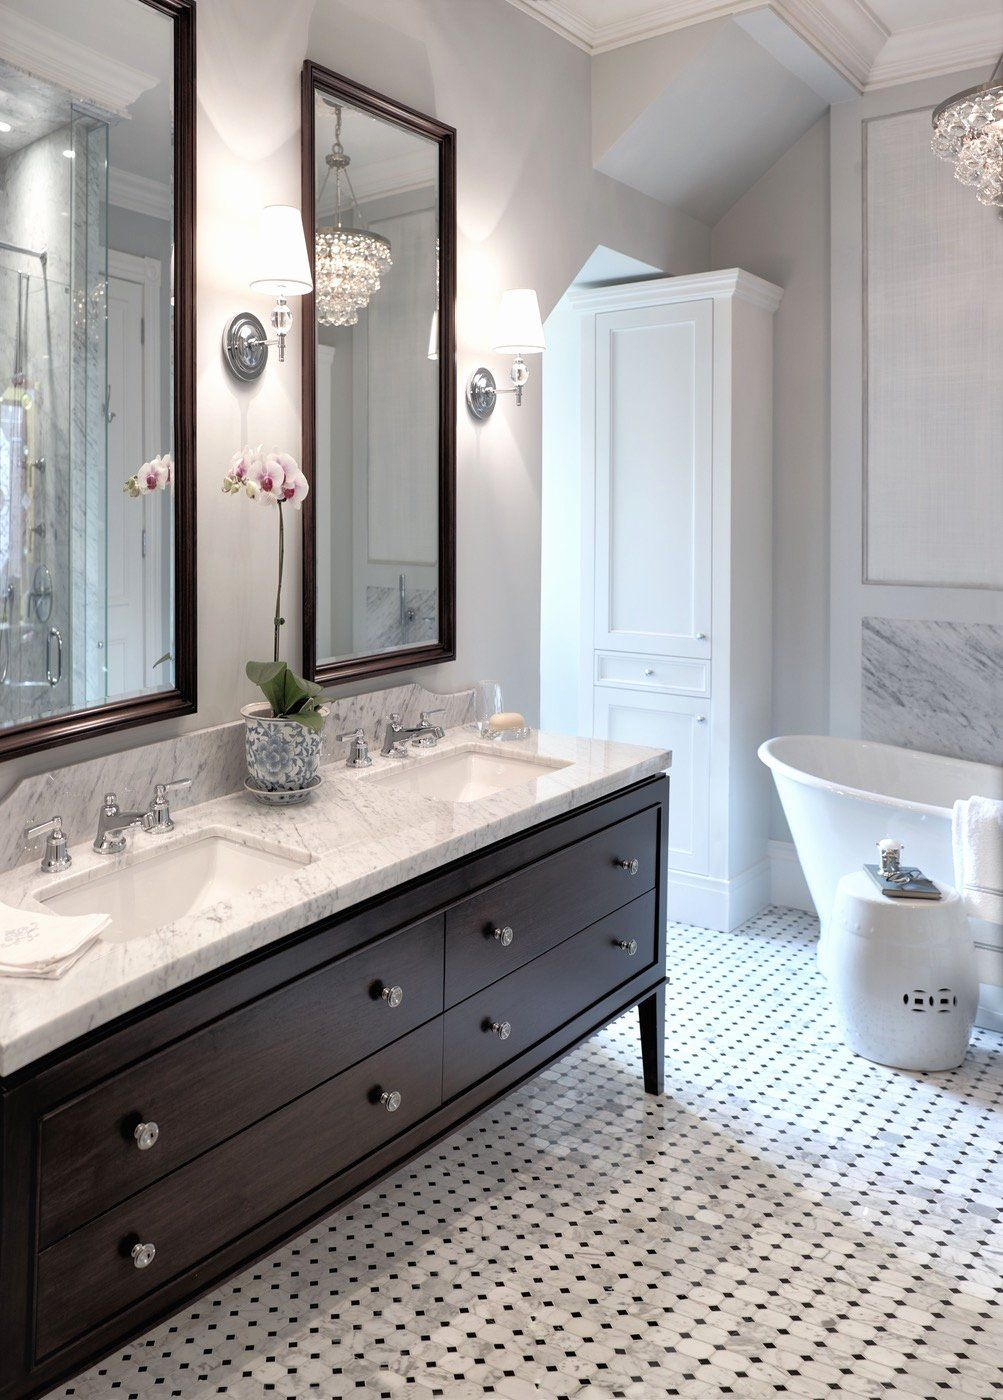 Small Bathroom Make Overs Luxury 8 Mind Blowing Small Bathroom Makeovers Before And After In 2020 Traditional Bathroom Small Bathroom Makeover Bathroom Remodel Master